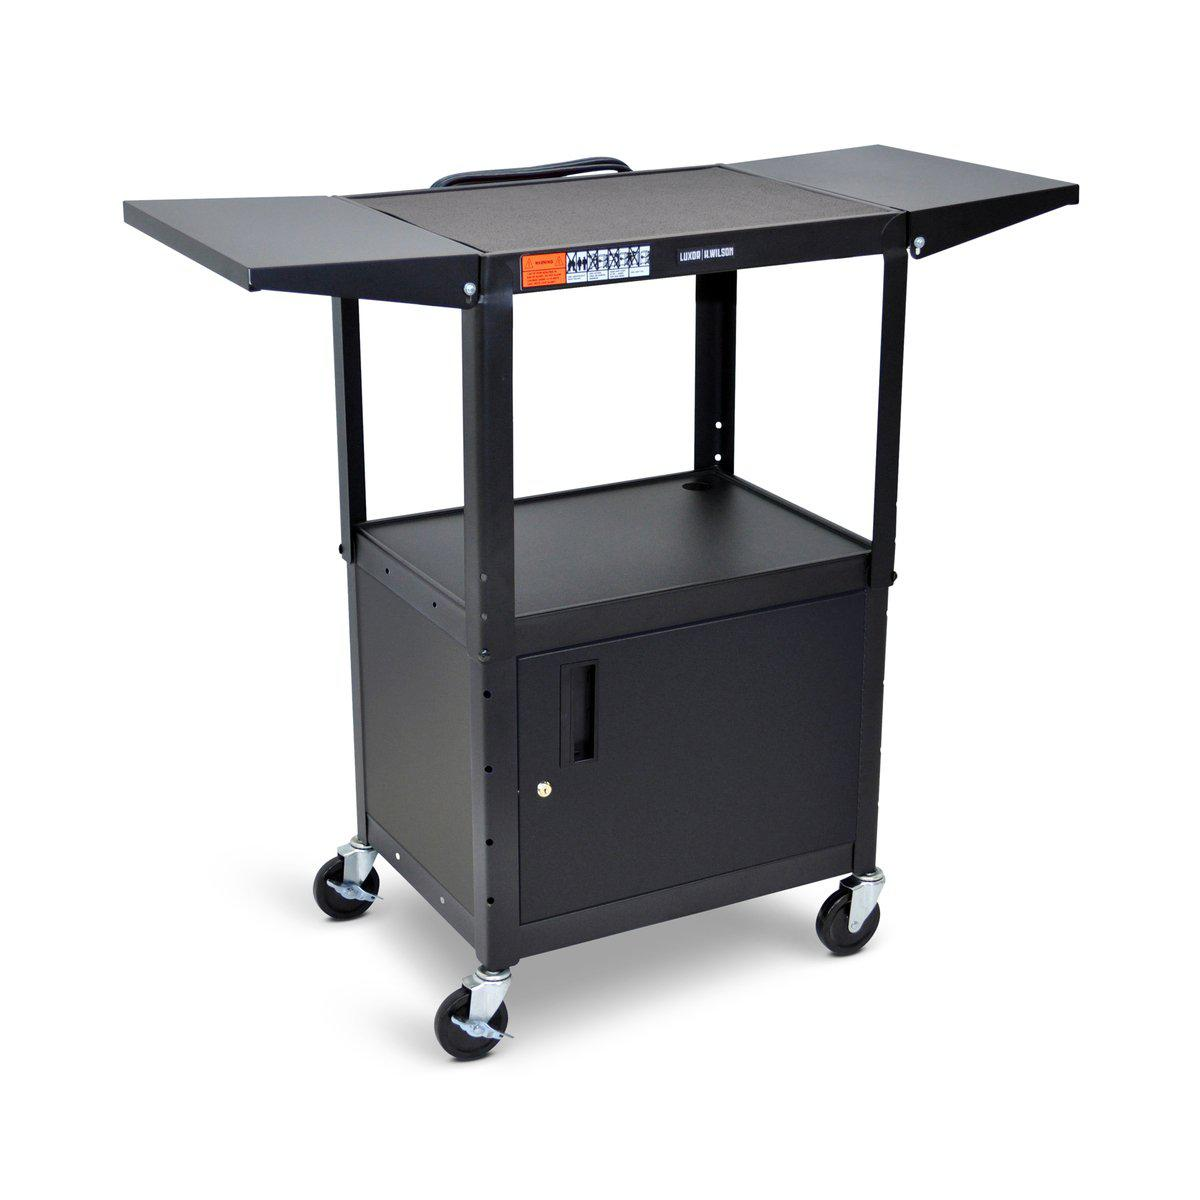 Adjustable-Height Steel AV Cart with Cabinet and Drop Leaf Shelves